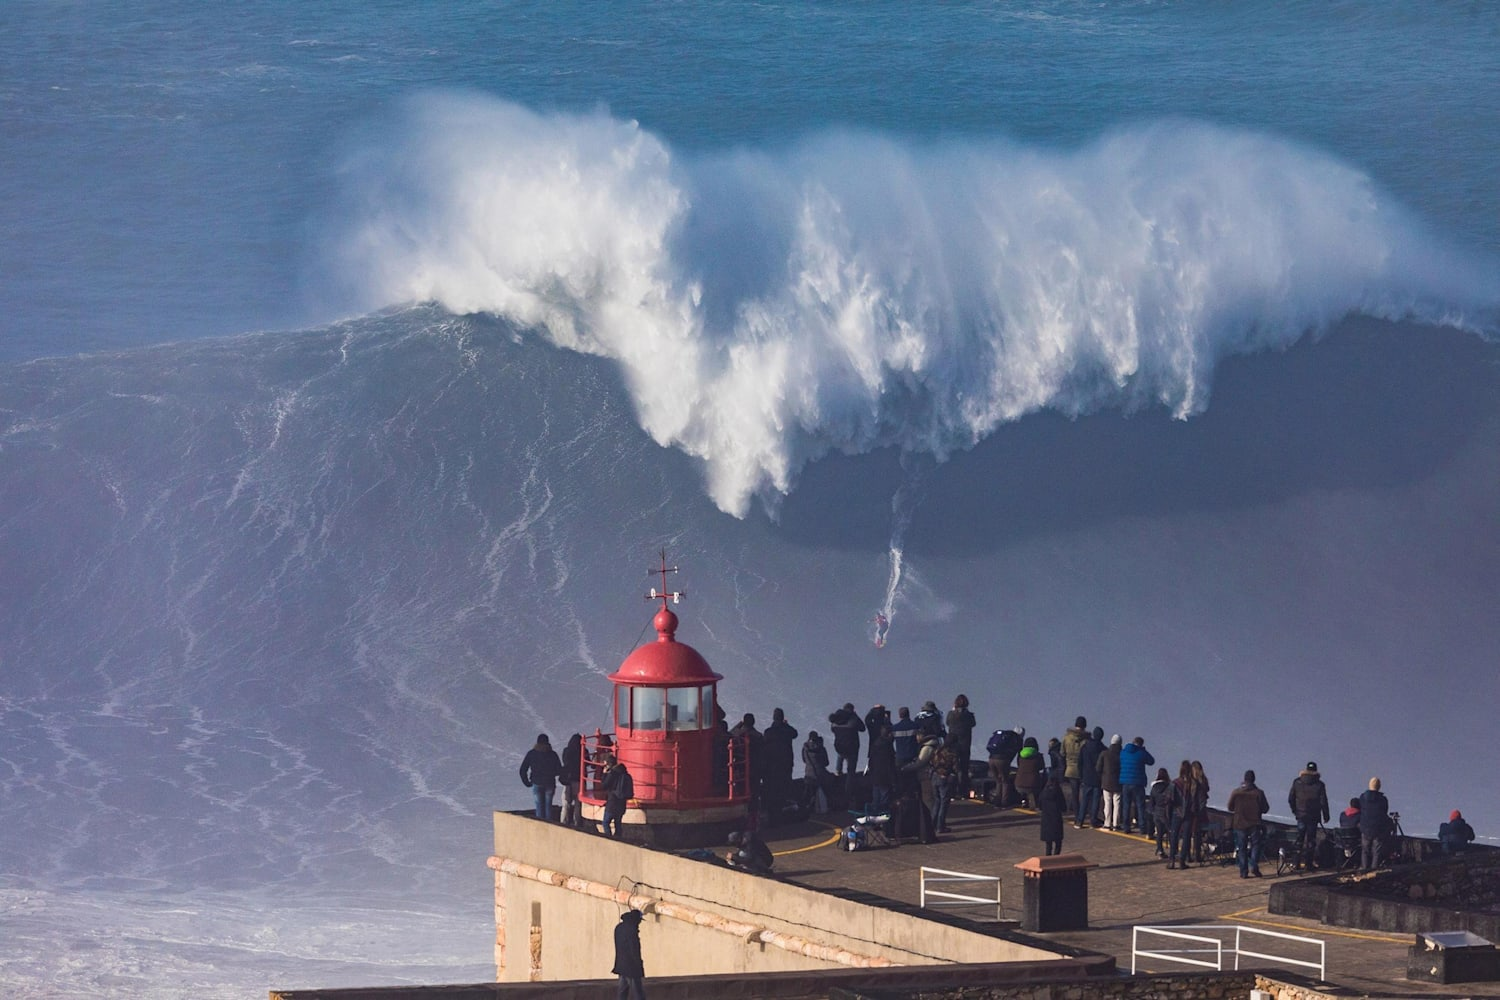 Sessions – surfing massive Nazare waves: video